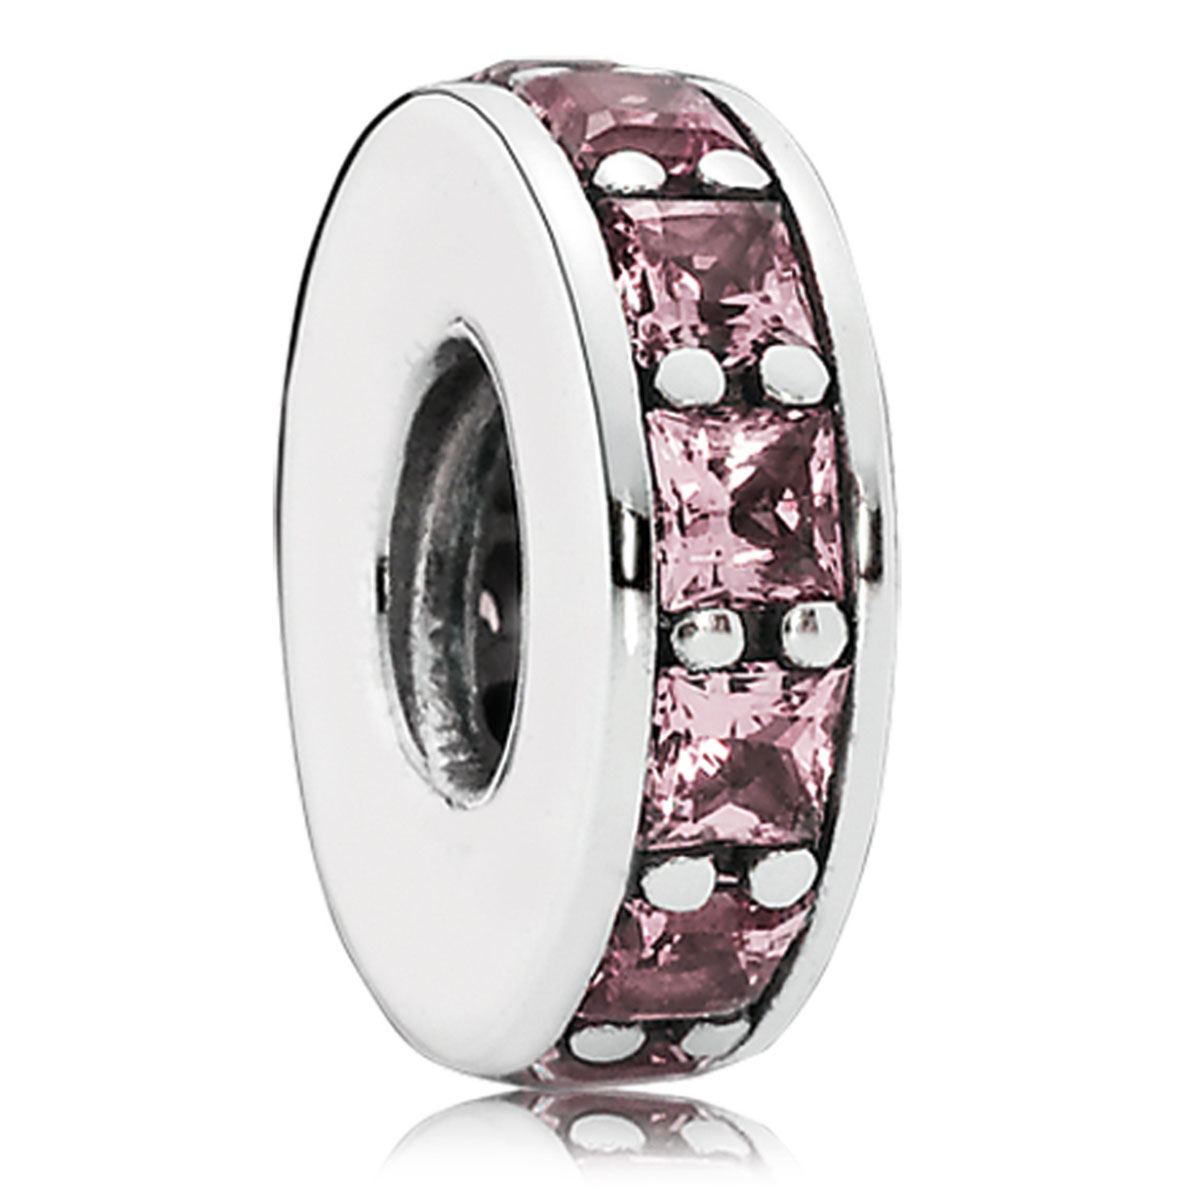 802-3072-PANDORA Eternity with Blush Pink Crystal Spacer